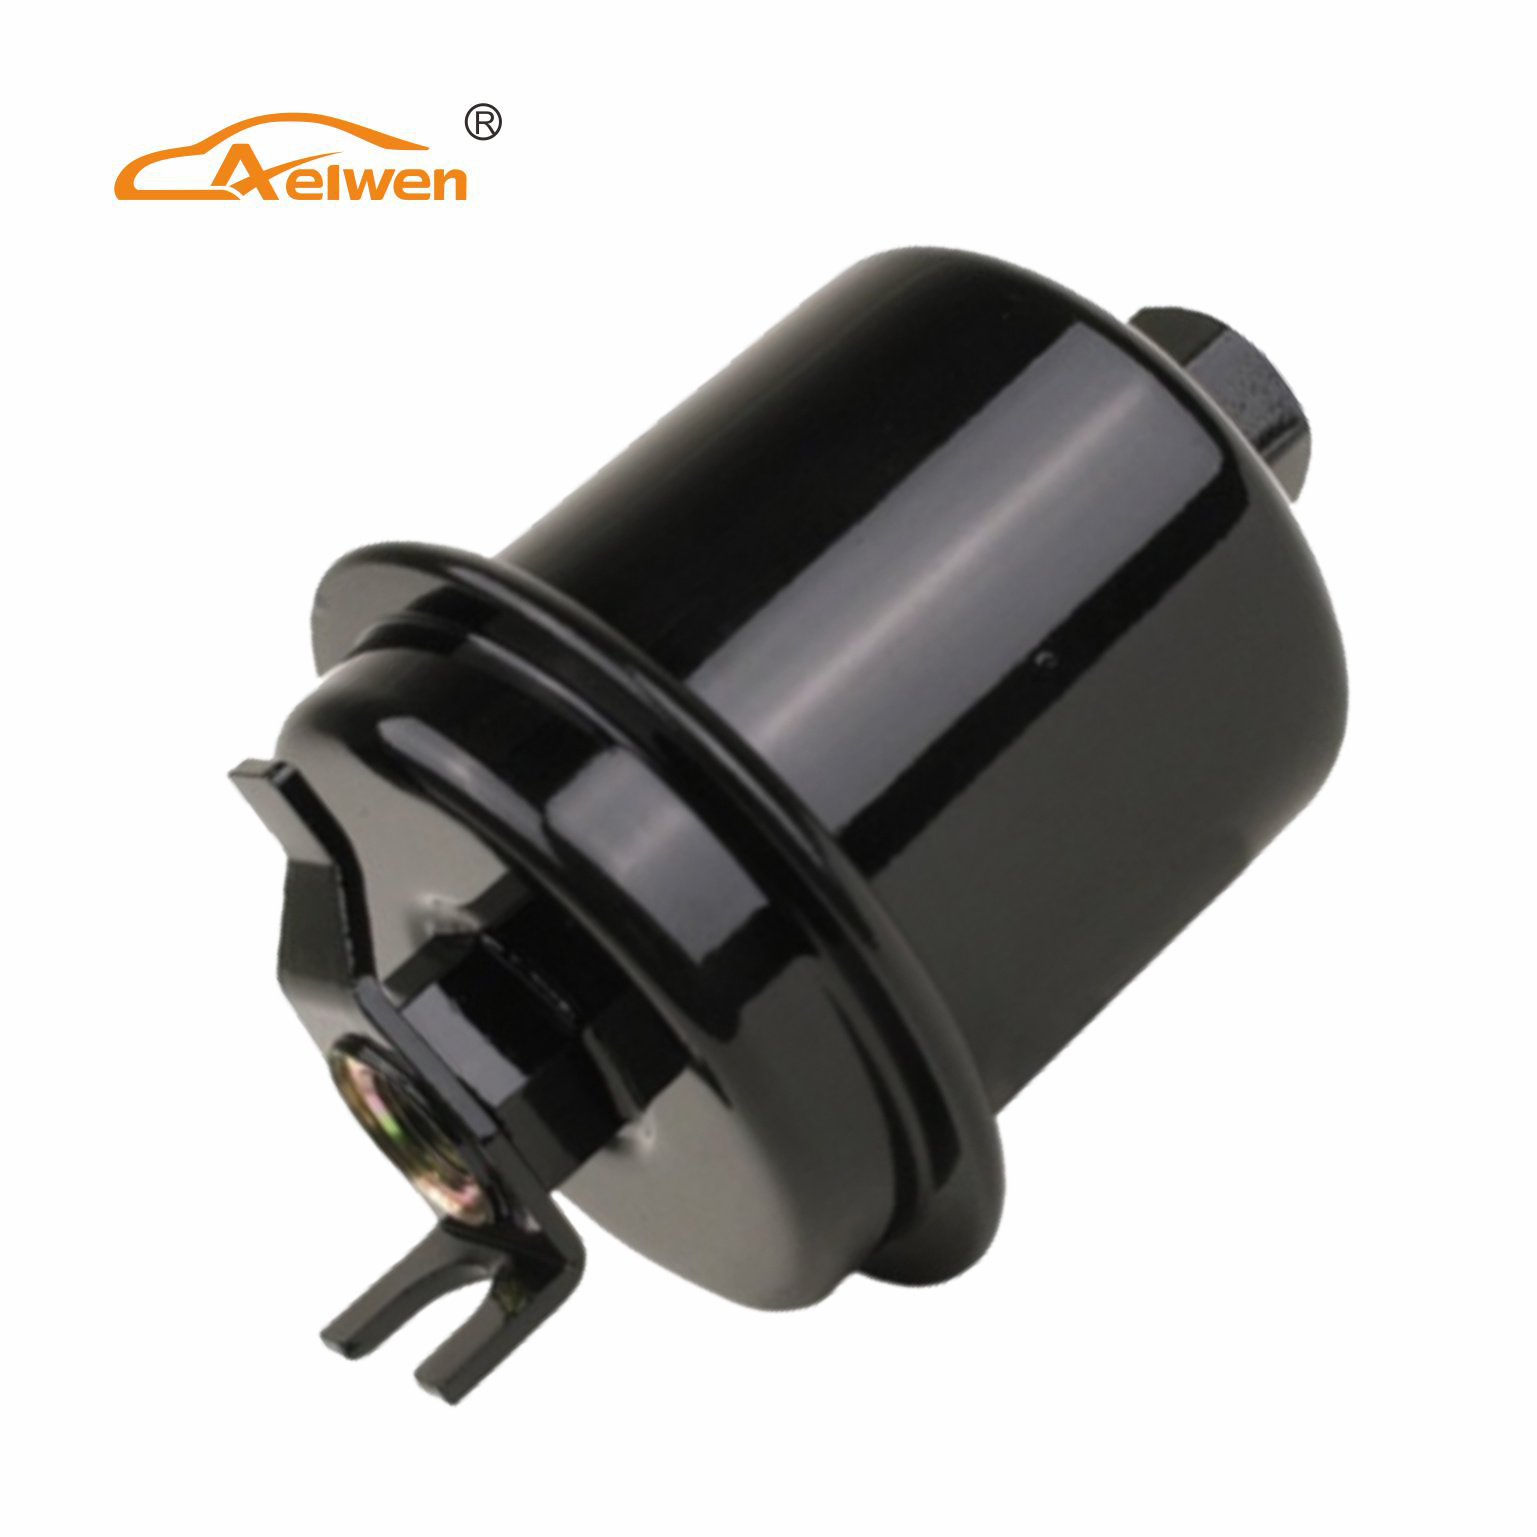 (25176324 16010QT5E01 16010ST593) China Auto Fuel Filter for Honda Accord -  China Auto Filter, Car Fuel Filter